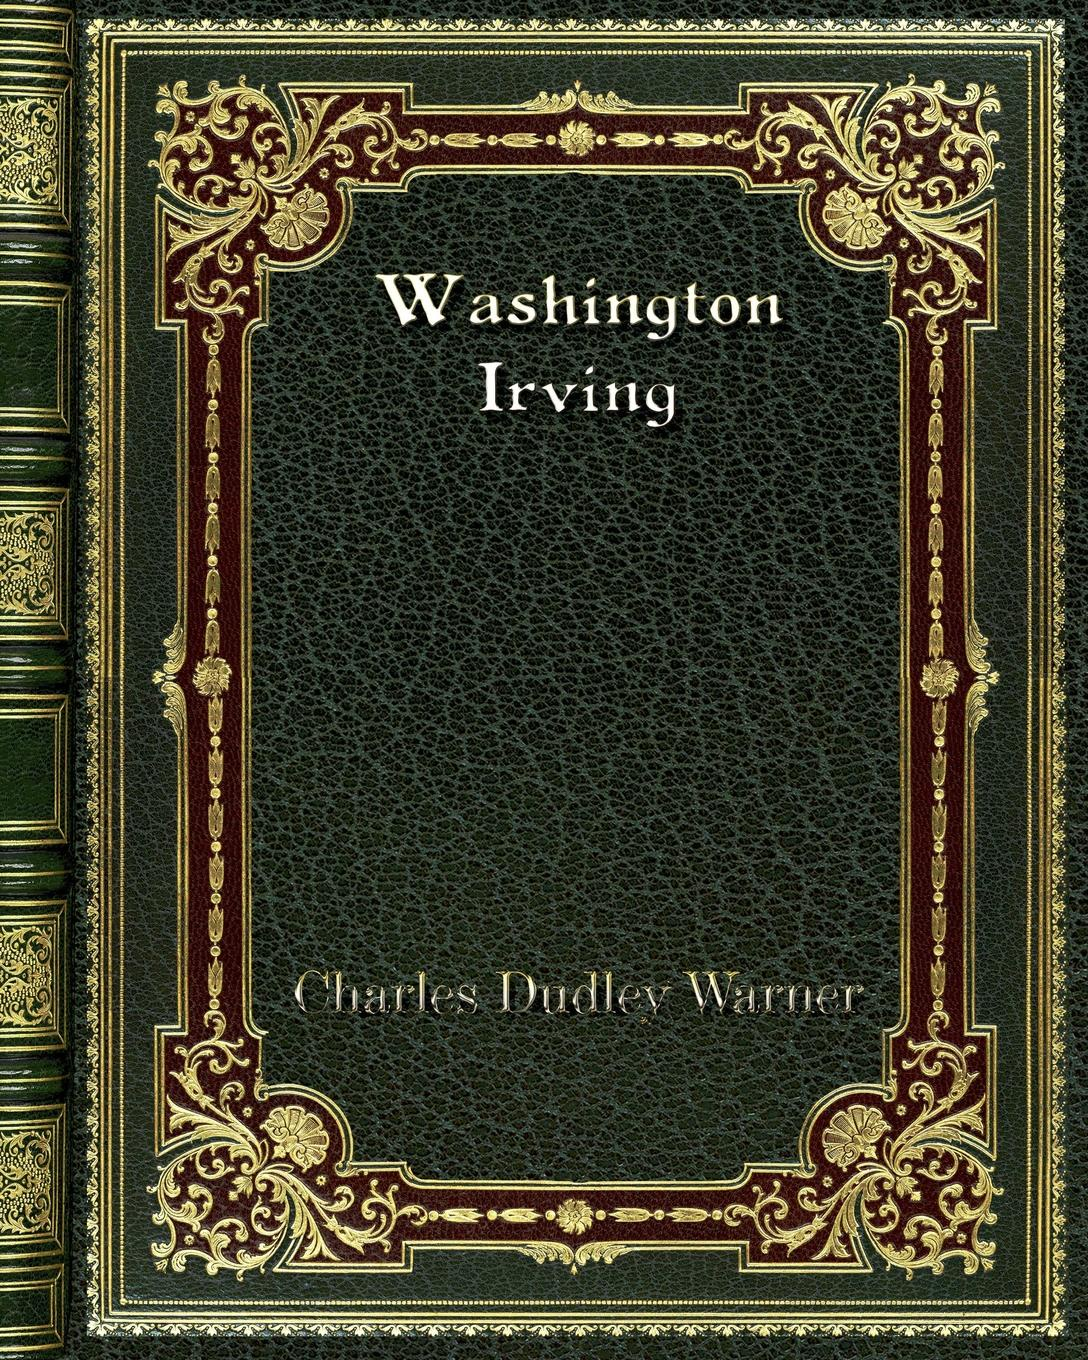 Charles Dudley Warner Washington Irving